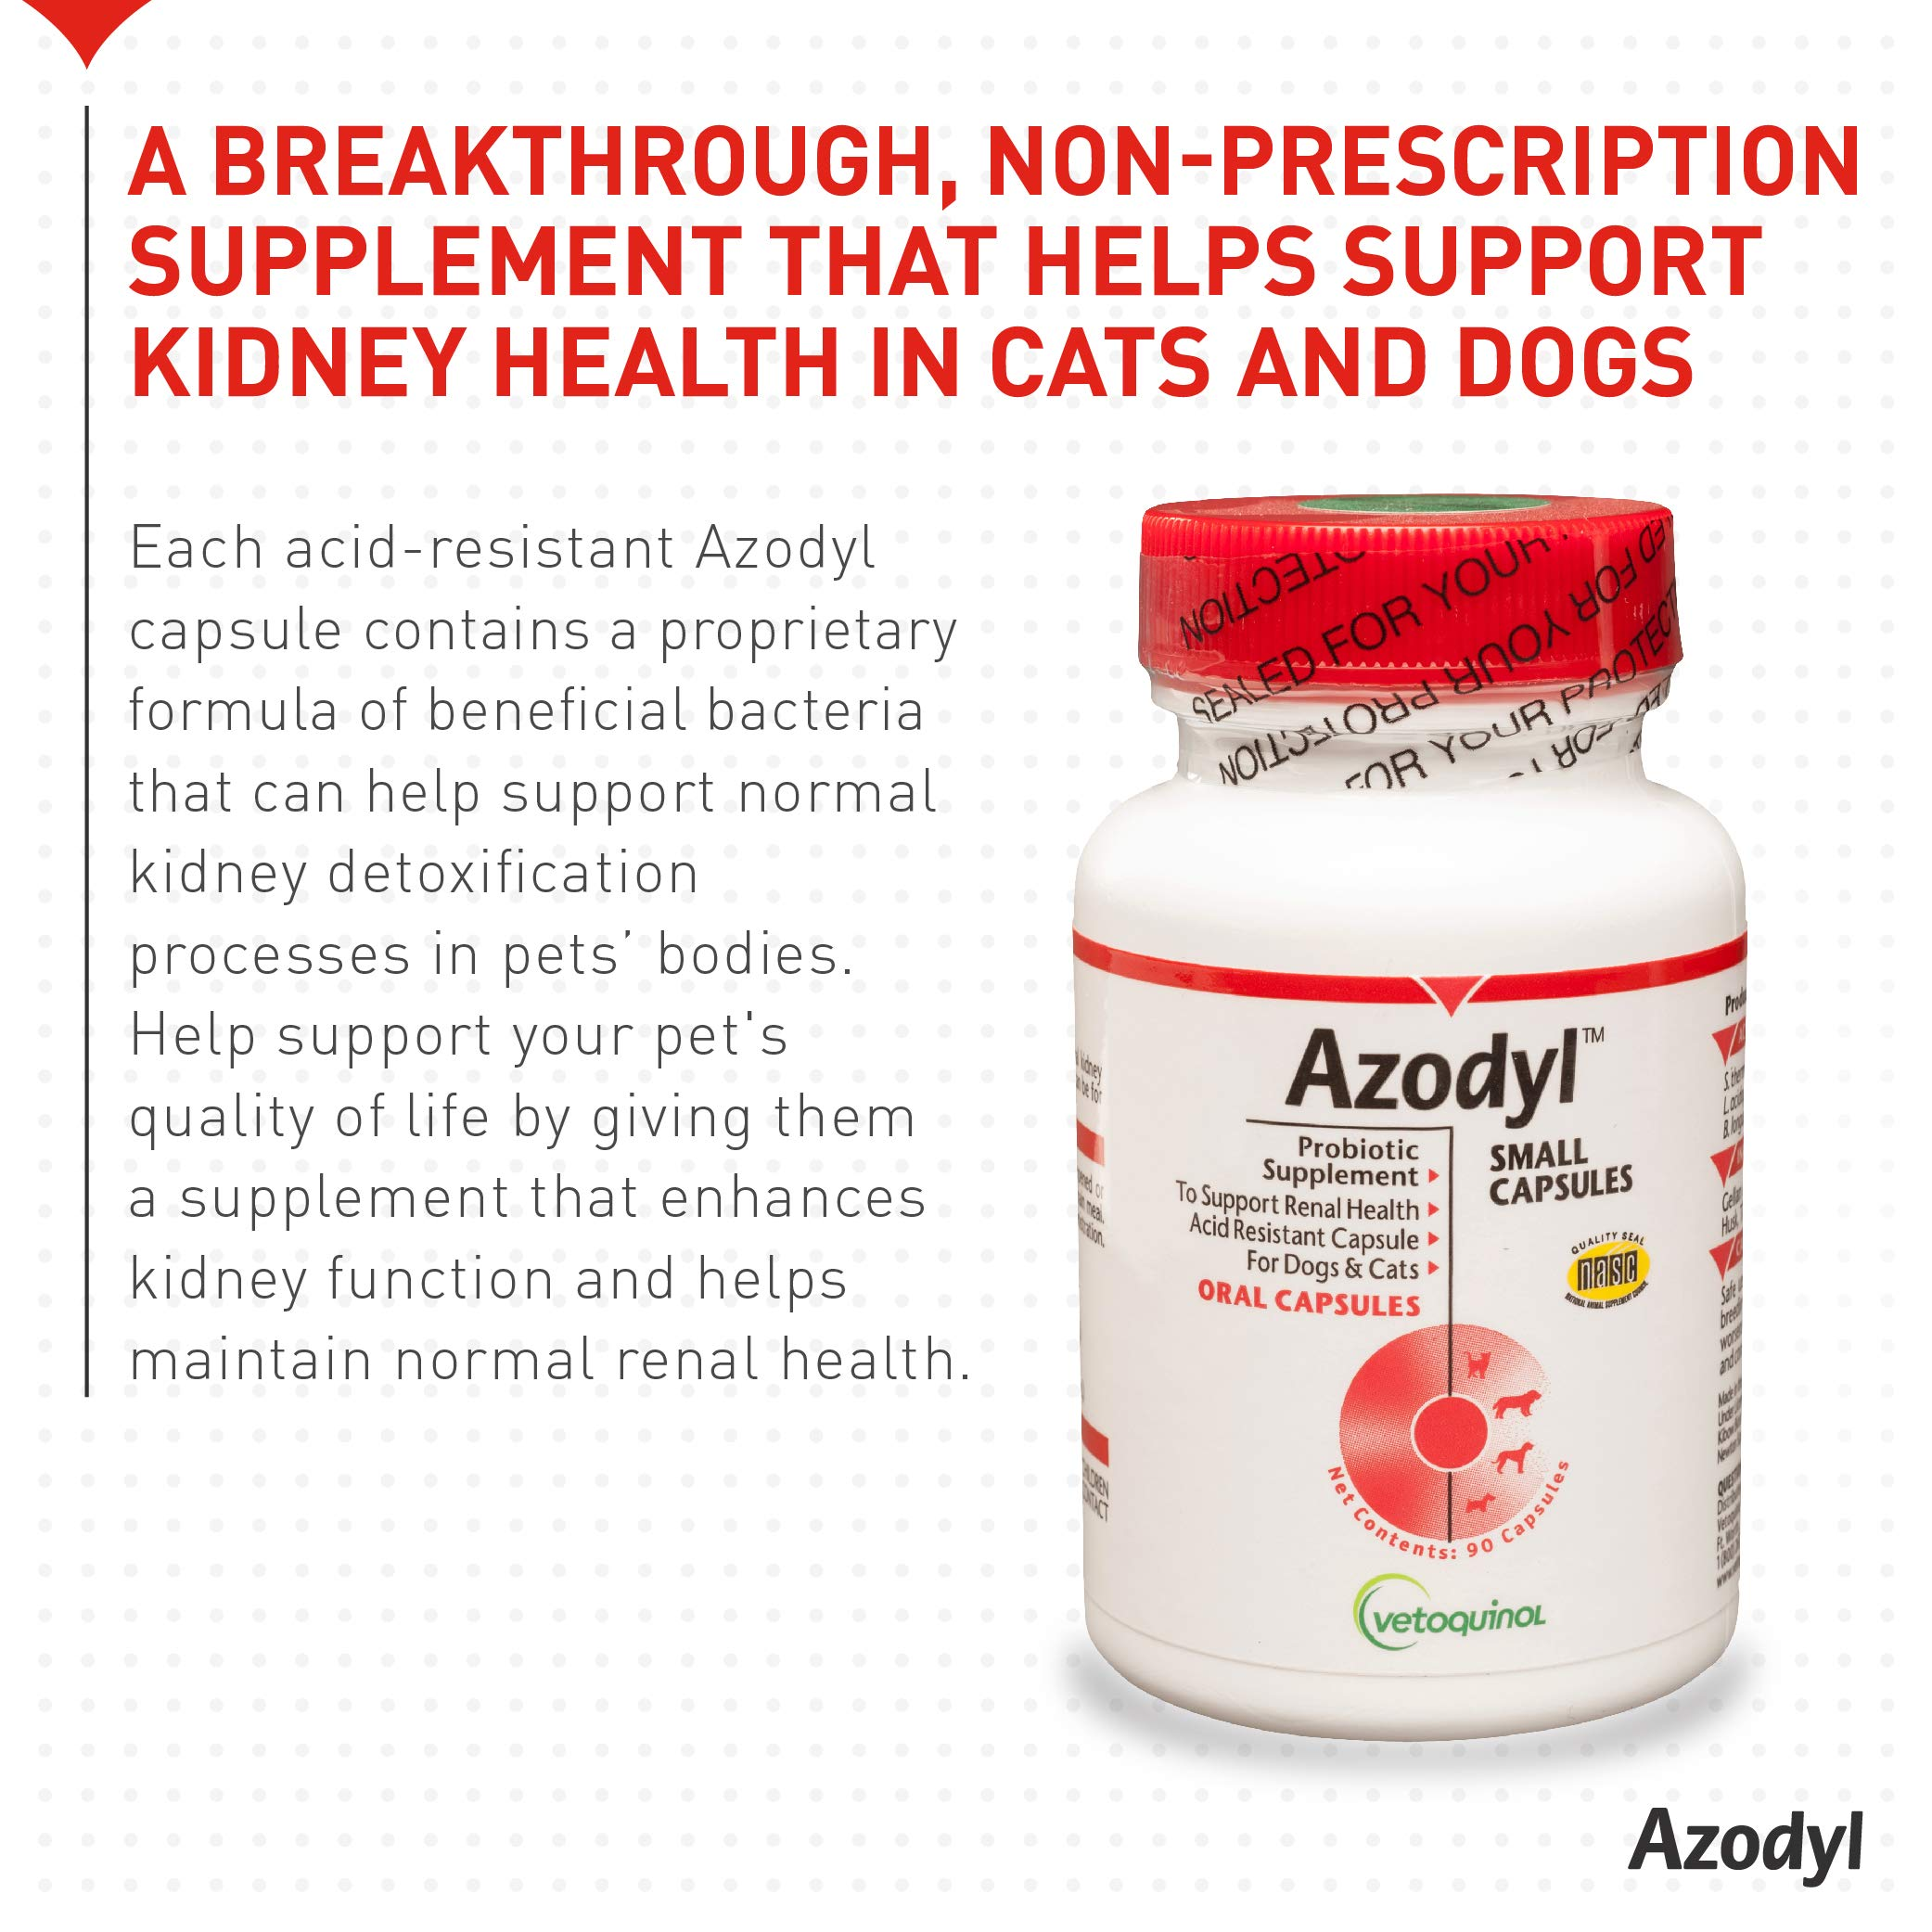 Vetoquinol Azodyl Kidney Health Supplement for Dogs & Cats, 90ct - Probiotic Pet Well-being - Help Support Kidney Function & Manage Renal Toxins - Renal Care Supplement - Easy-to-Swallow Small Caps by Vetoquinol (Image #2)